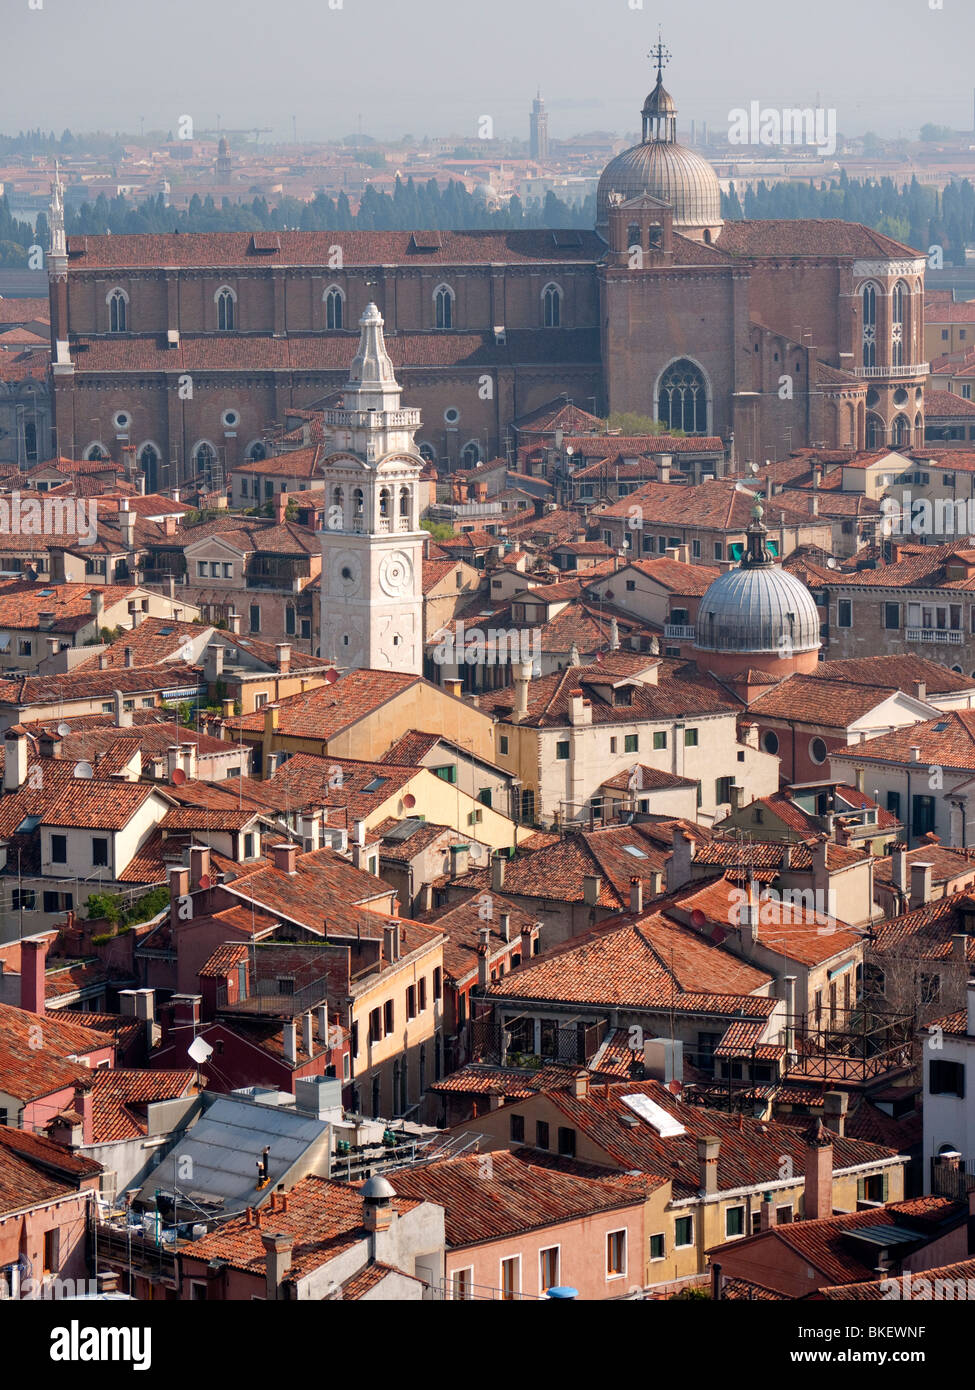 View over historic rooftops of Venice in Italy - Stock Image